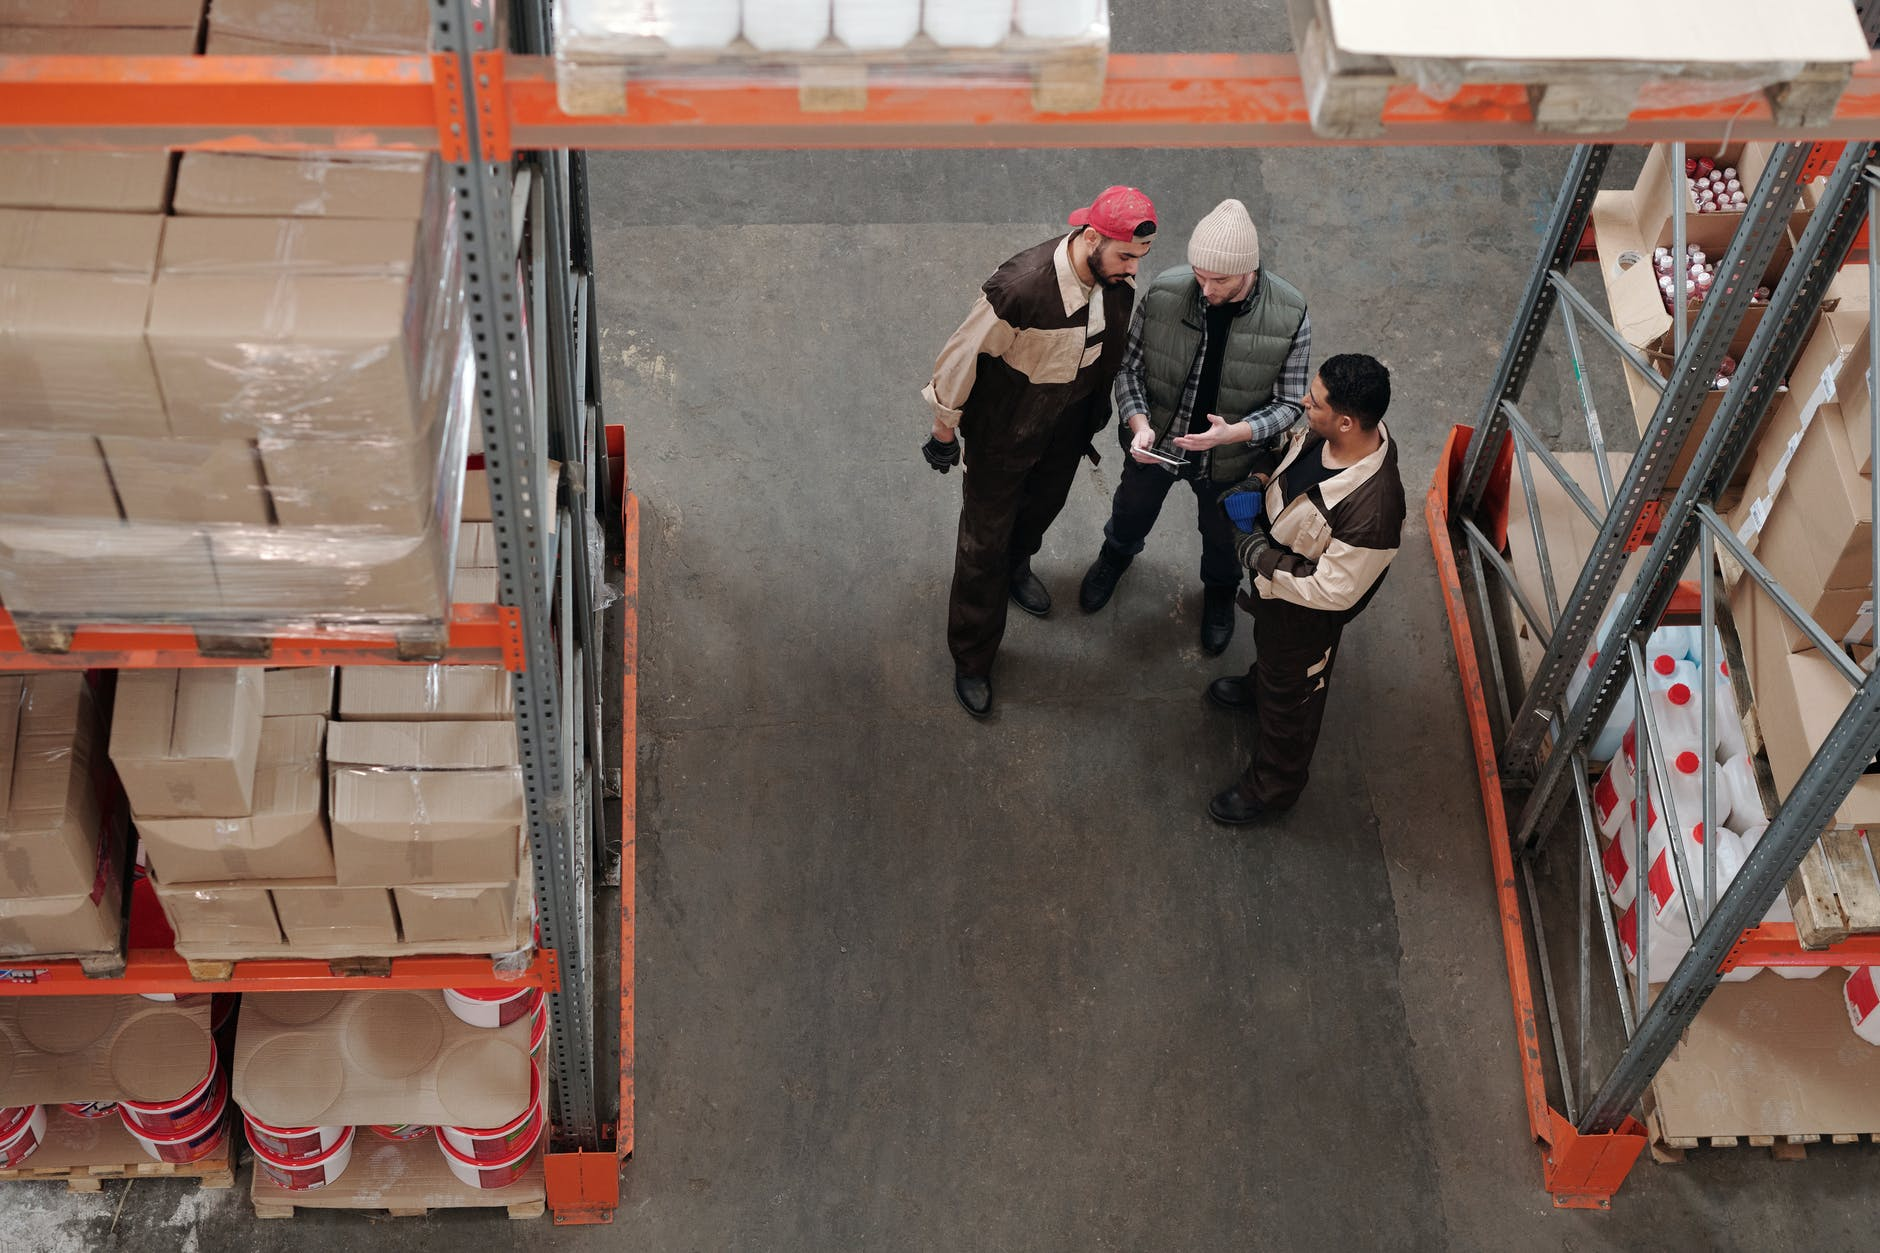 pos software with inventory control - track inventory